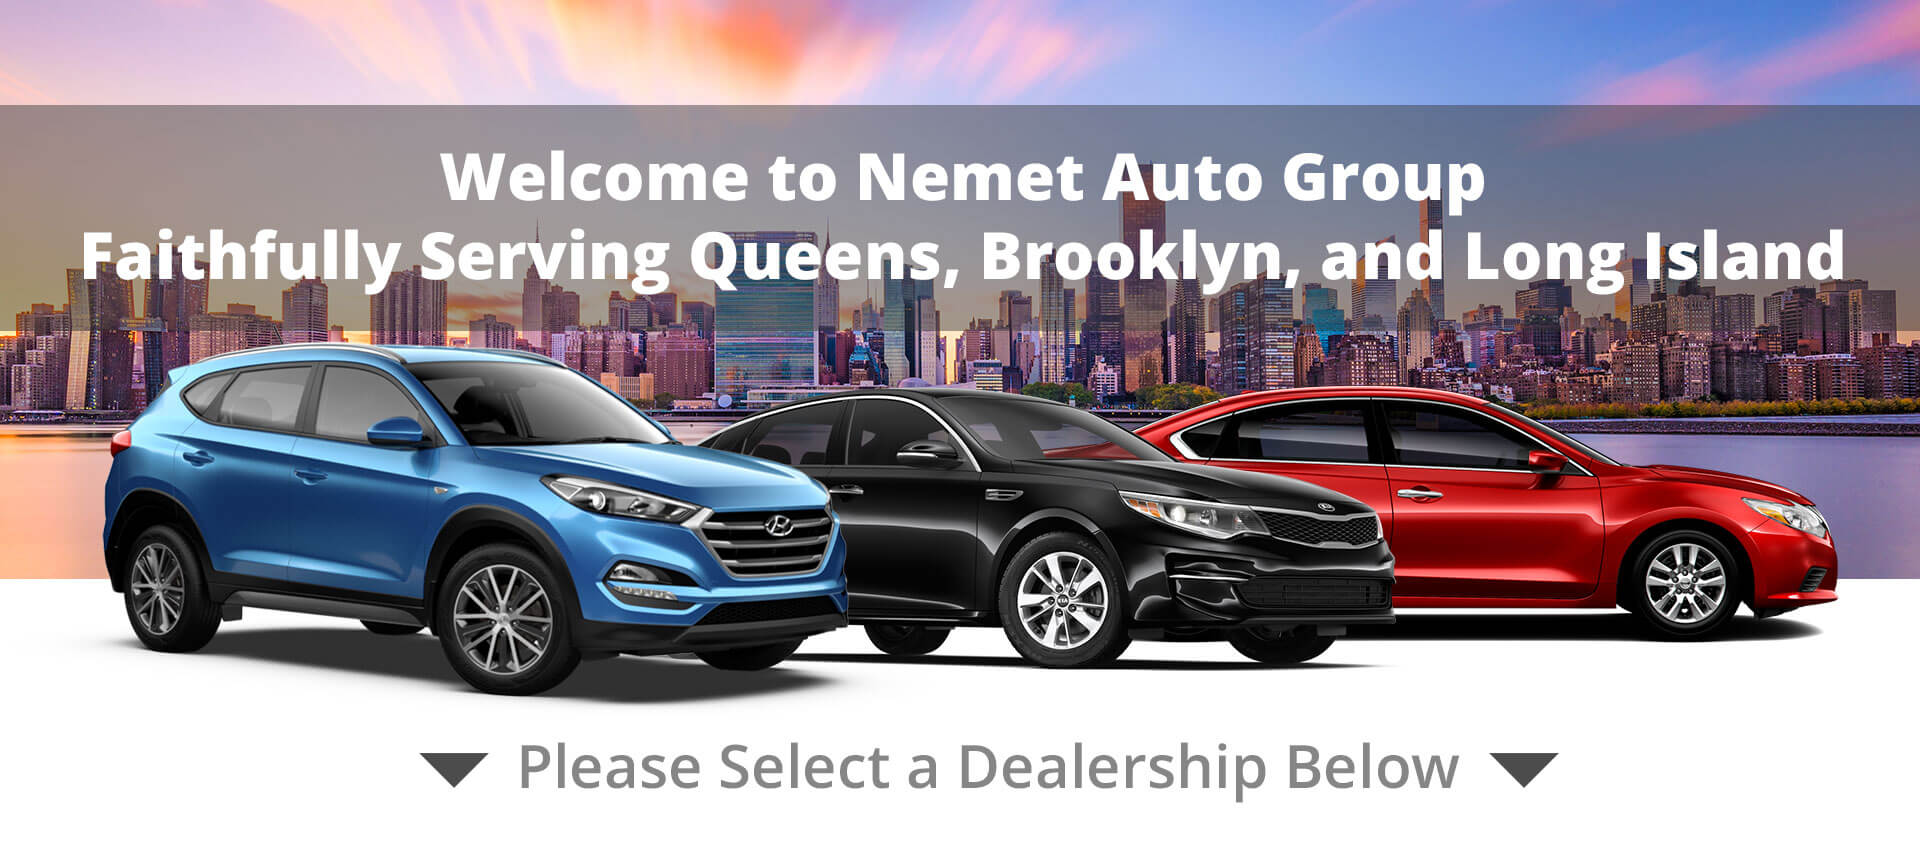 Nissan, Hyundai U0026 Kia Dealer In Jamaica NY | Nemet Auto Group Serves ...